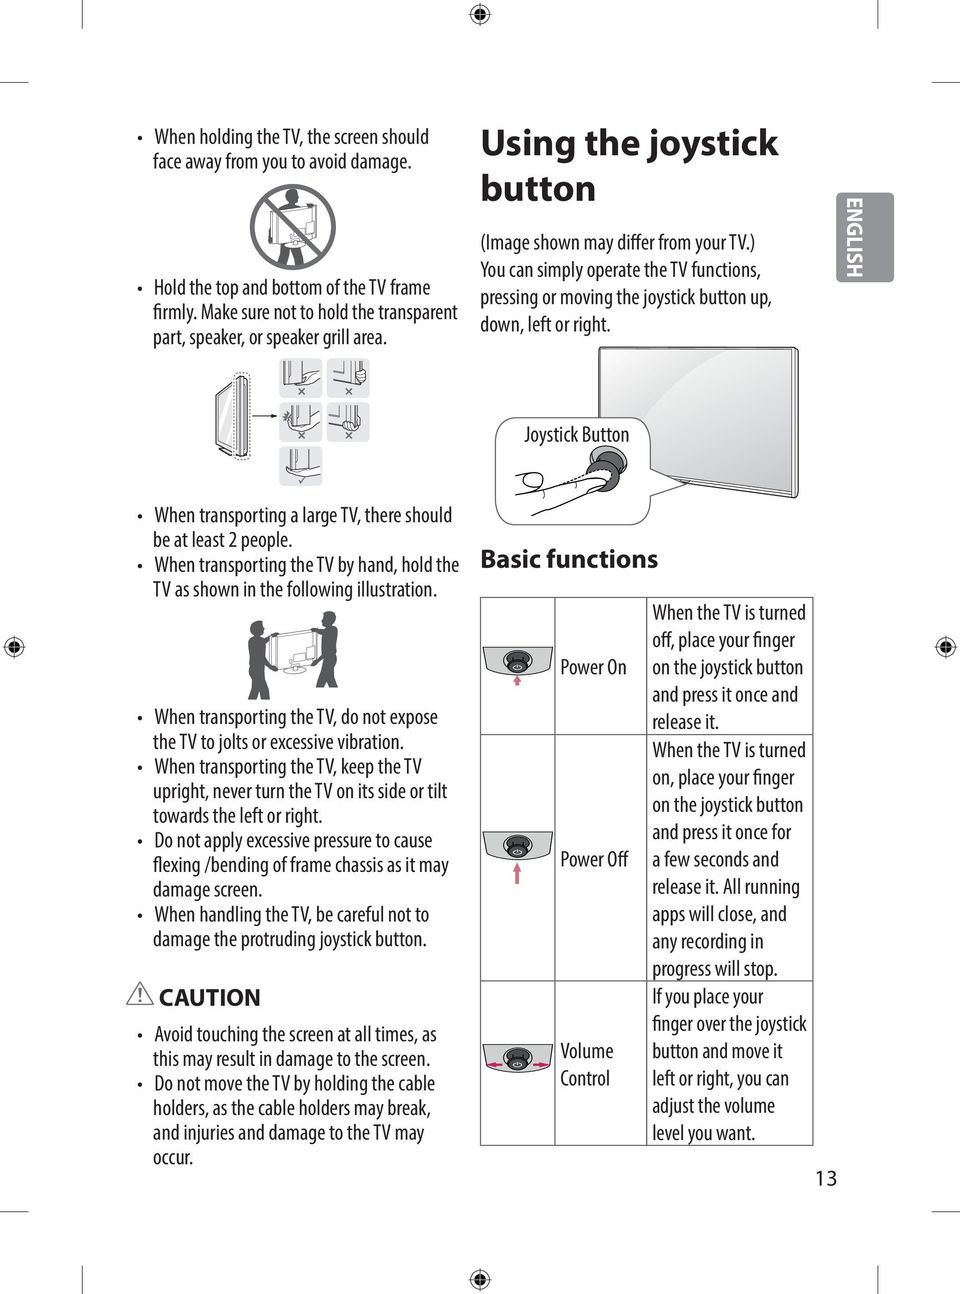 ENGLISH Joystick Button When transporting a large TV, there should be at least 2 people. When transporting the TV by hand, hold the TV as shown in the following illustration.